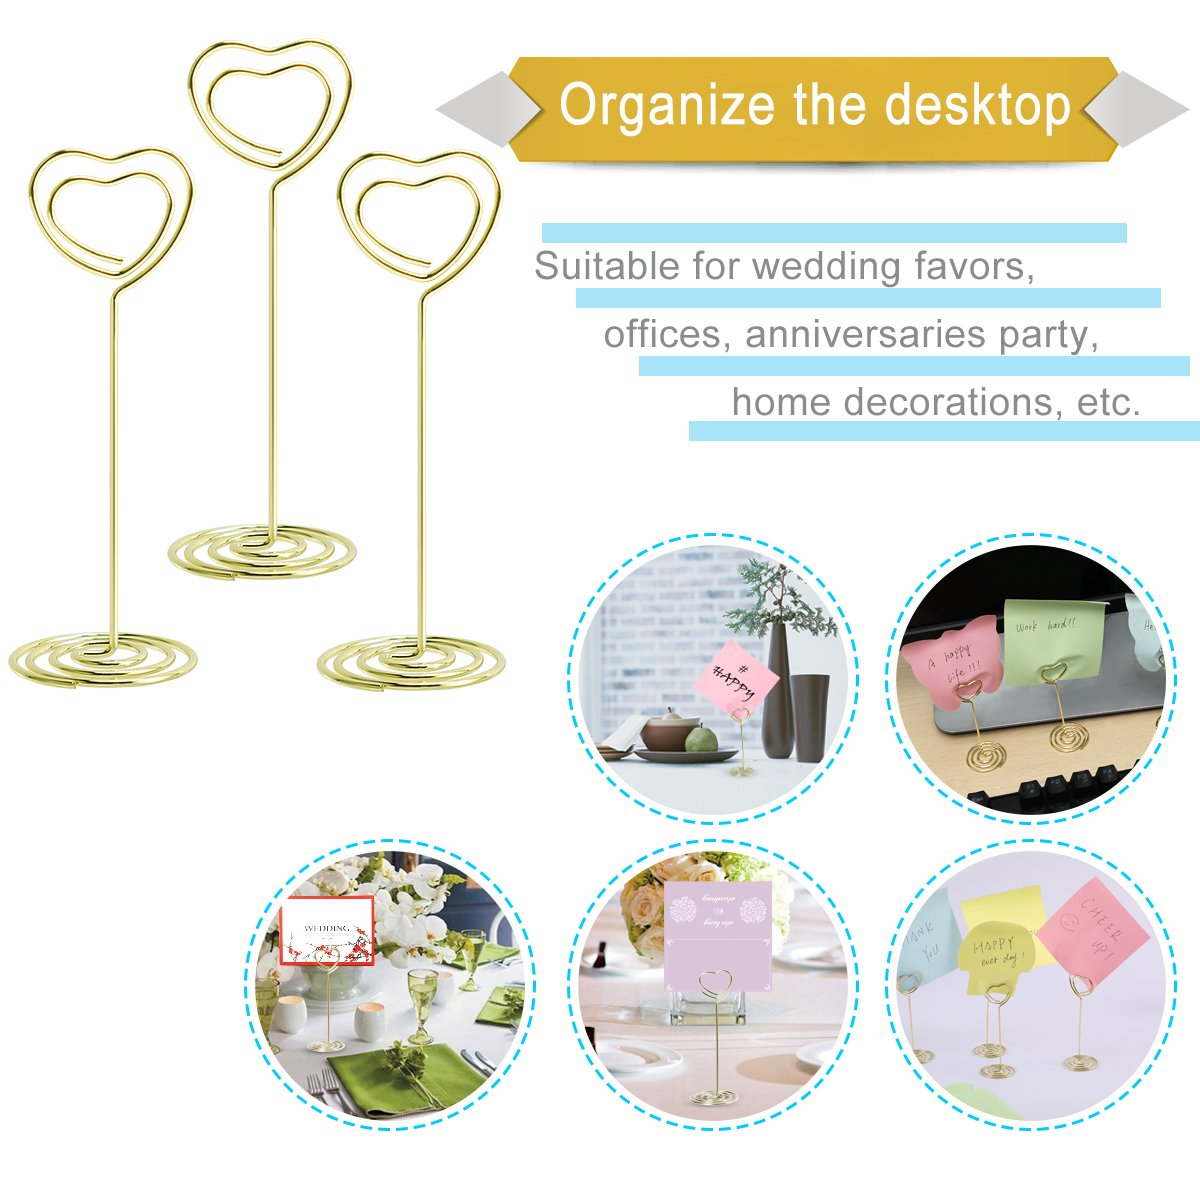 Table Photo Holder - Aieve 24 Pack Love Heart Shape Table Number Holders Place Card Holders Menu Clips Holders Stand for Wedding Party Gatherings Office Desk Memo Menu Table Photo Clips(Gold) by Aieve (Image #5)